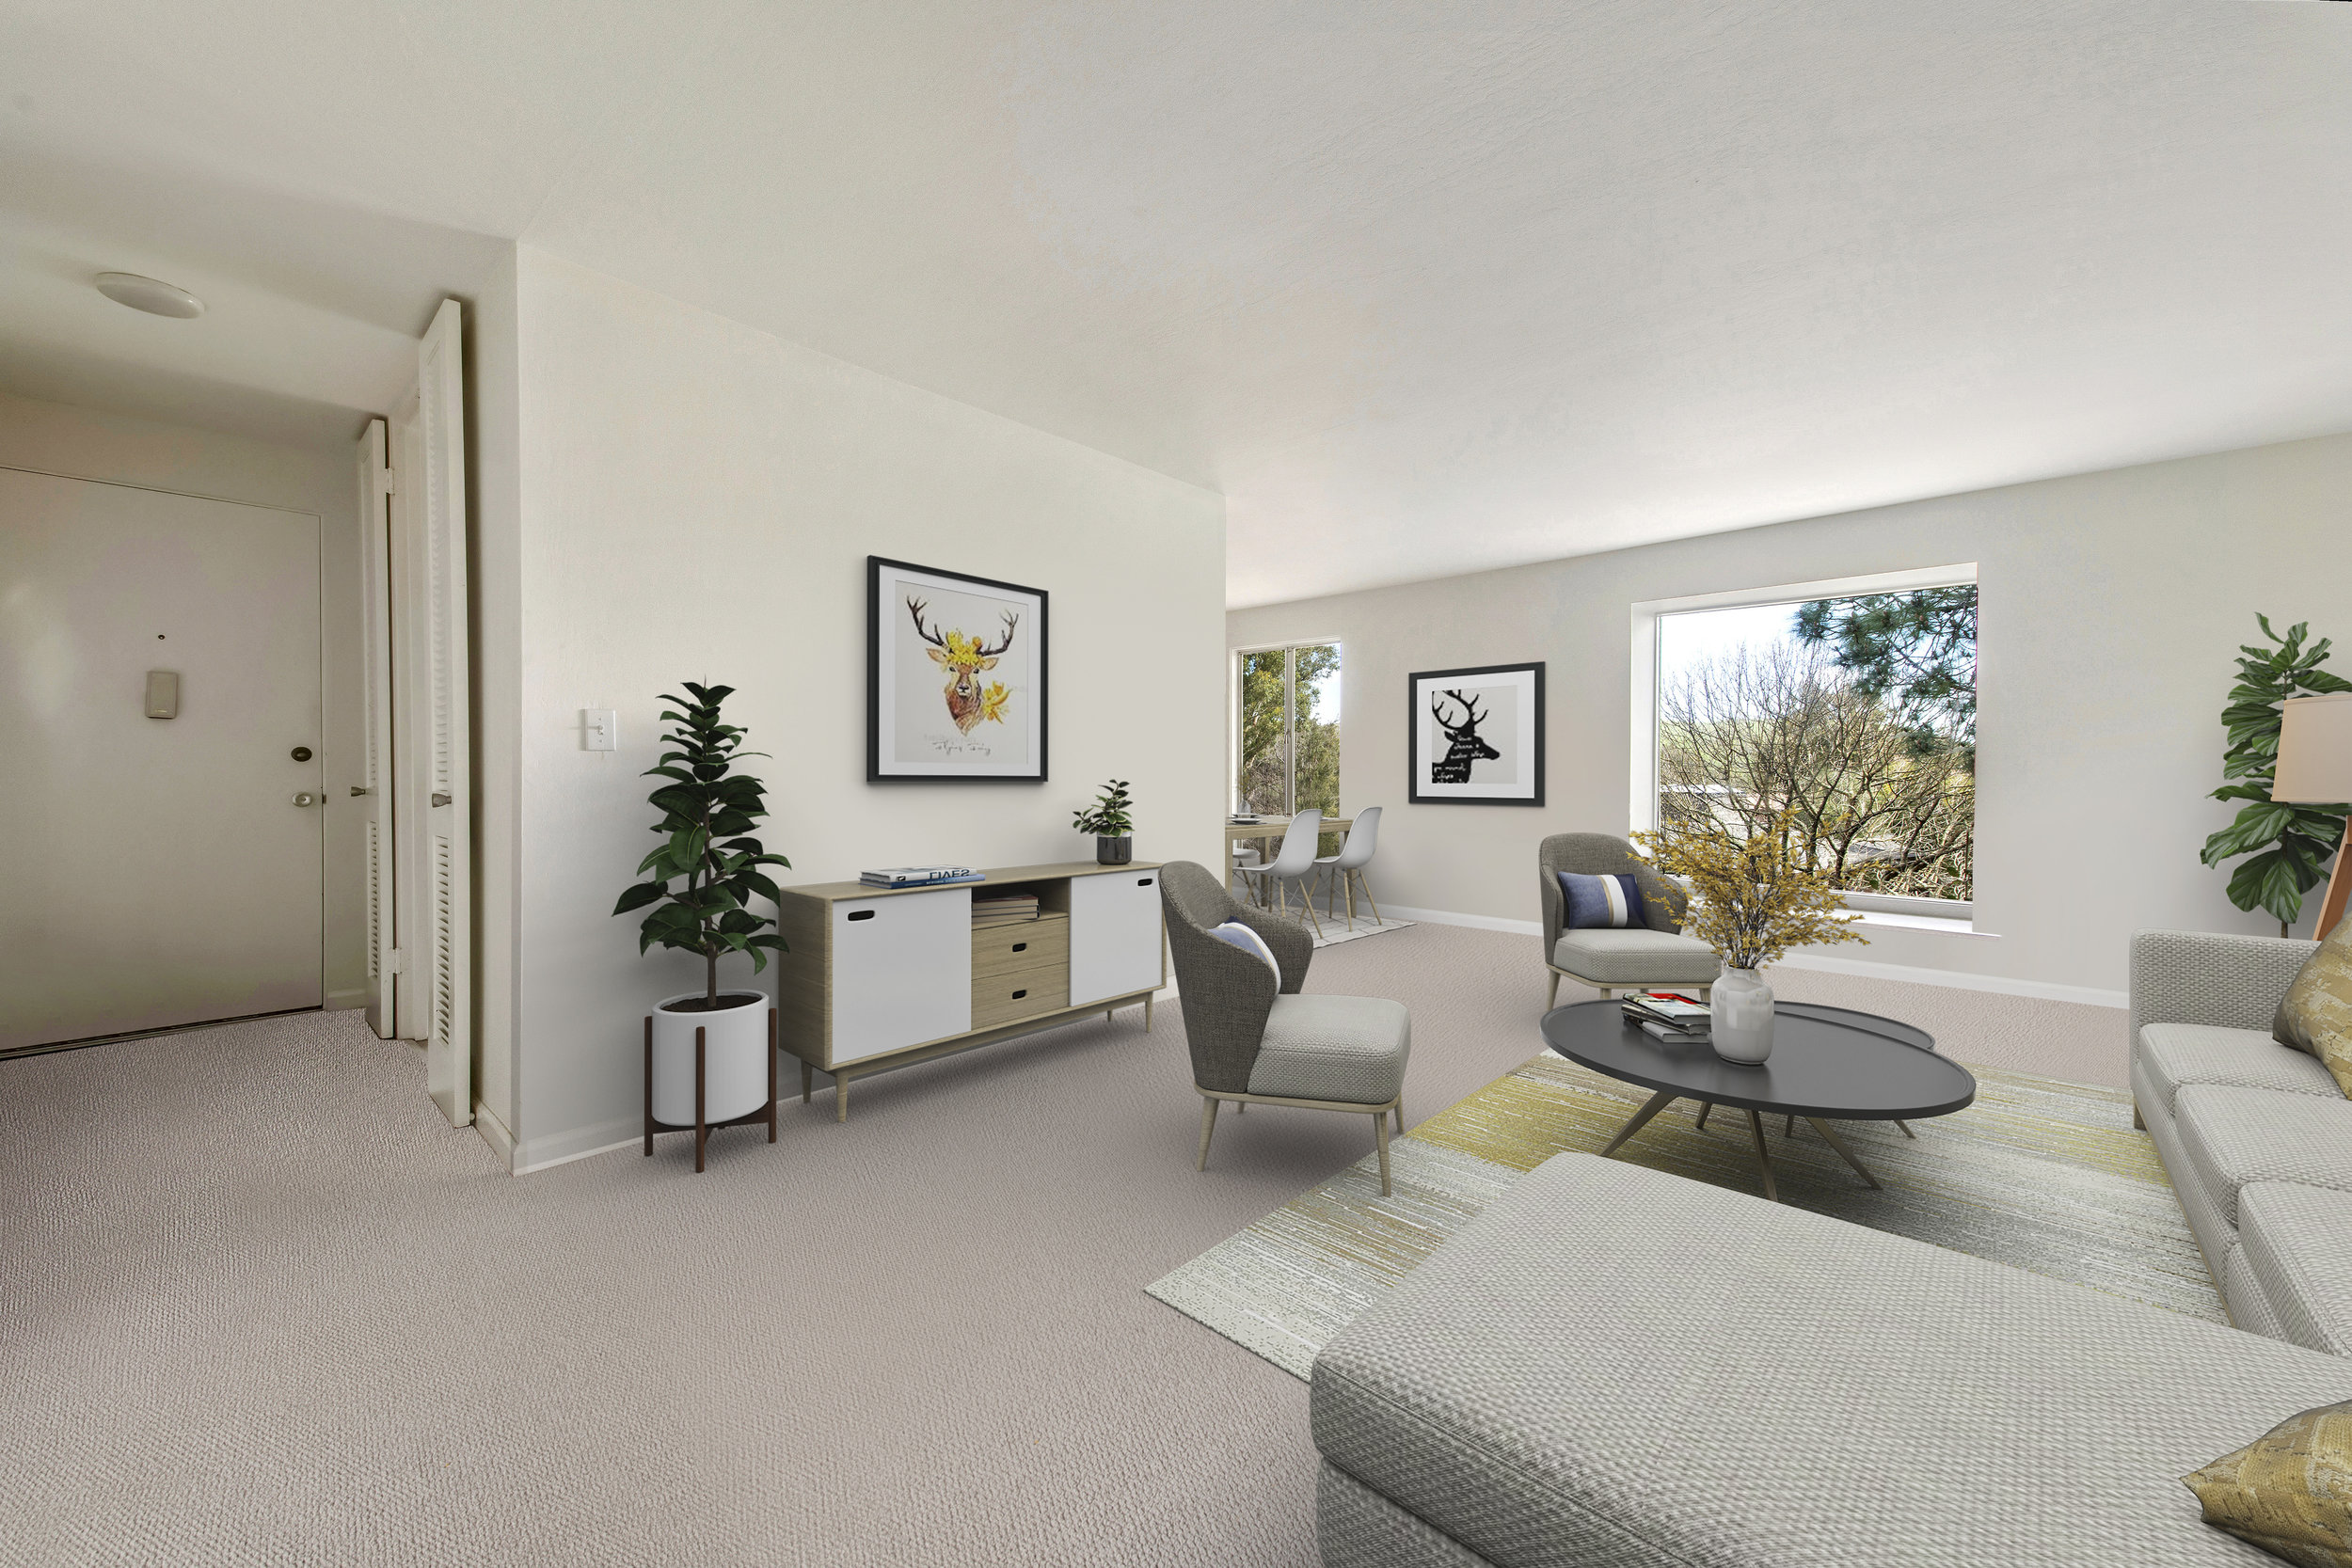 SOLD - 9 Forest Lane, San Rafael, CA1 bed/ 1 bath$420,000Represented Sellers28 days on market, sold at full ask